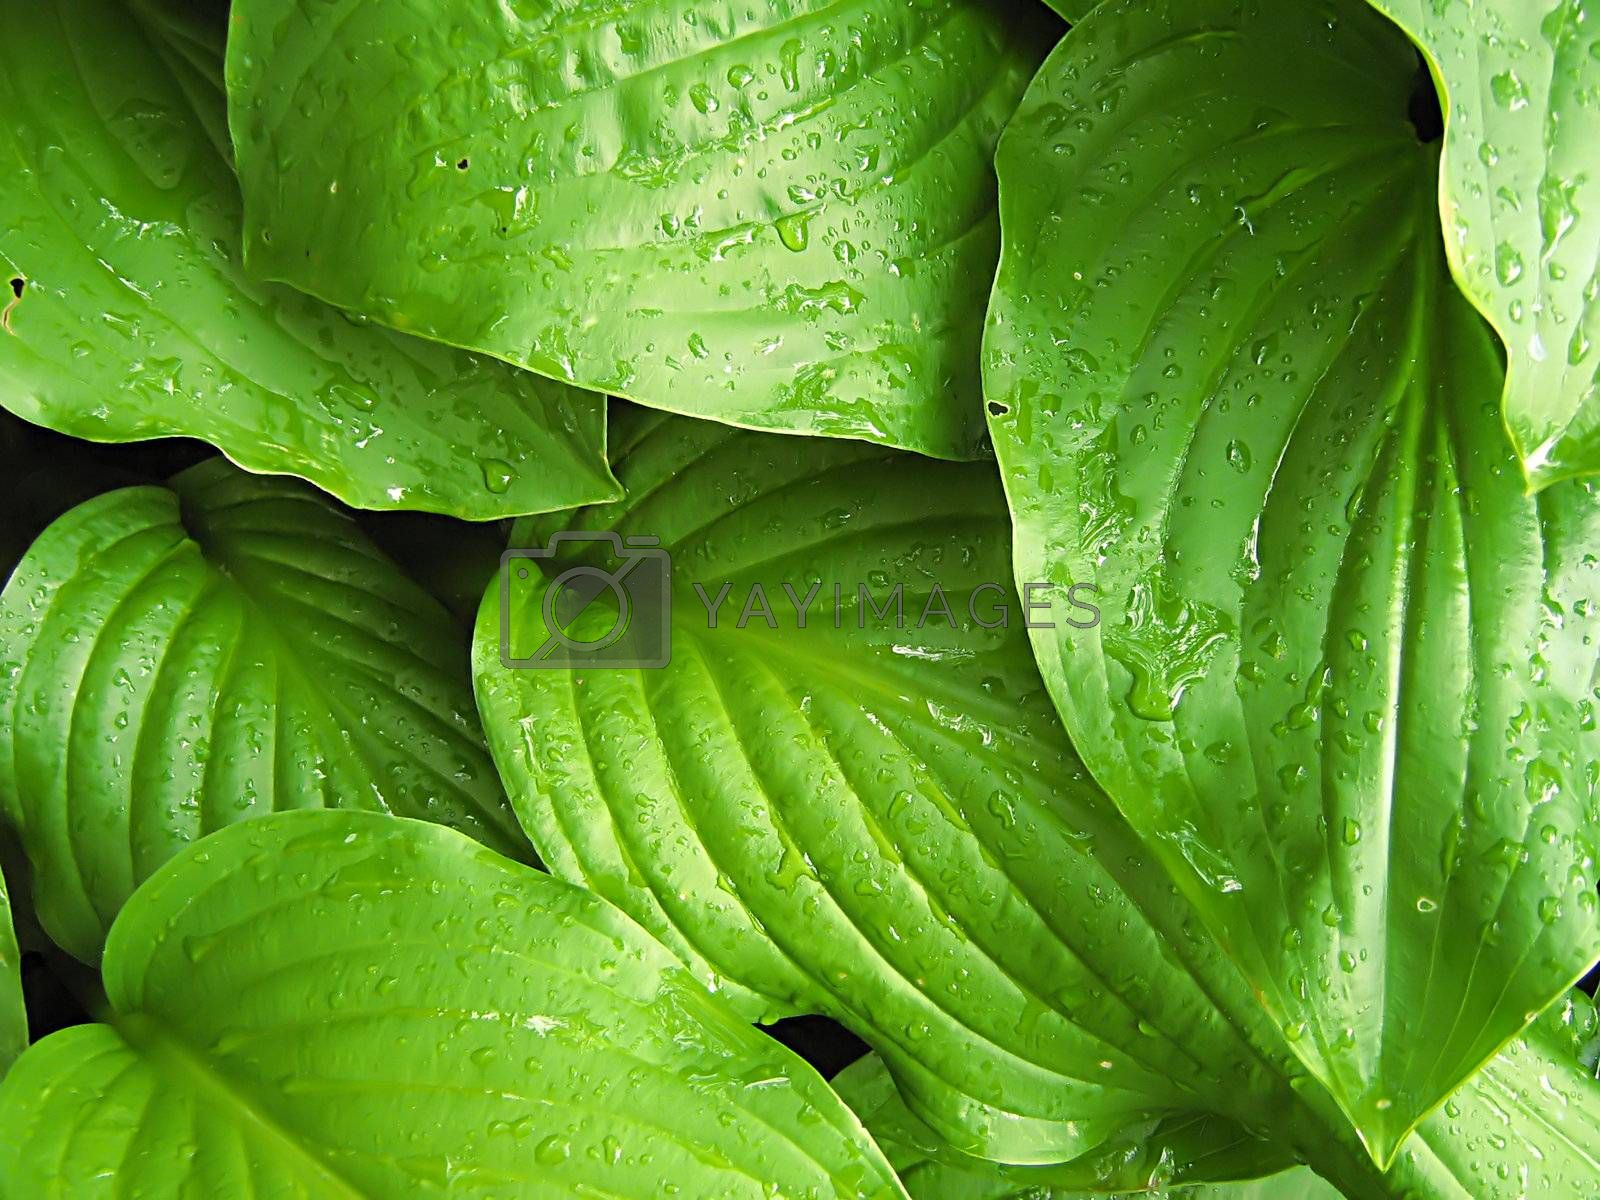 A photograph of leaves detailing their texture.